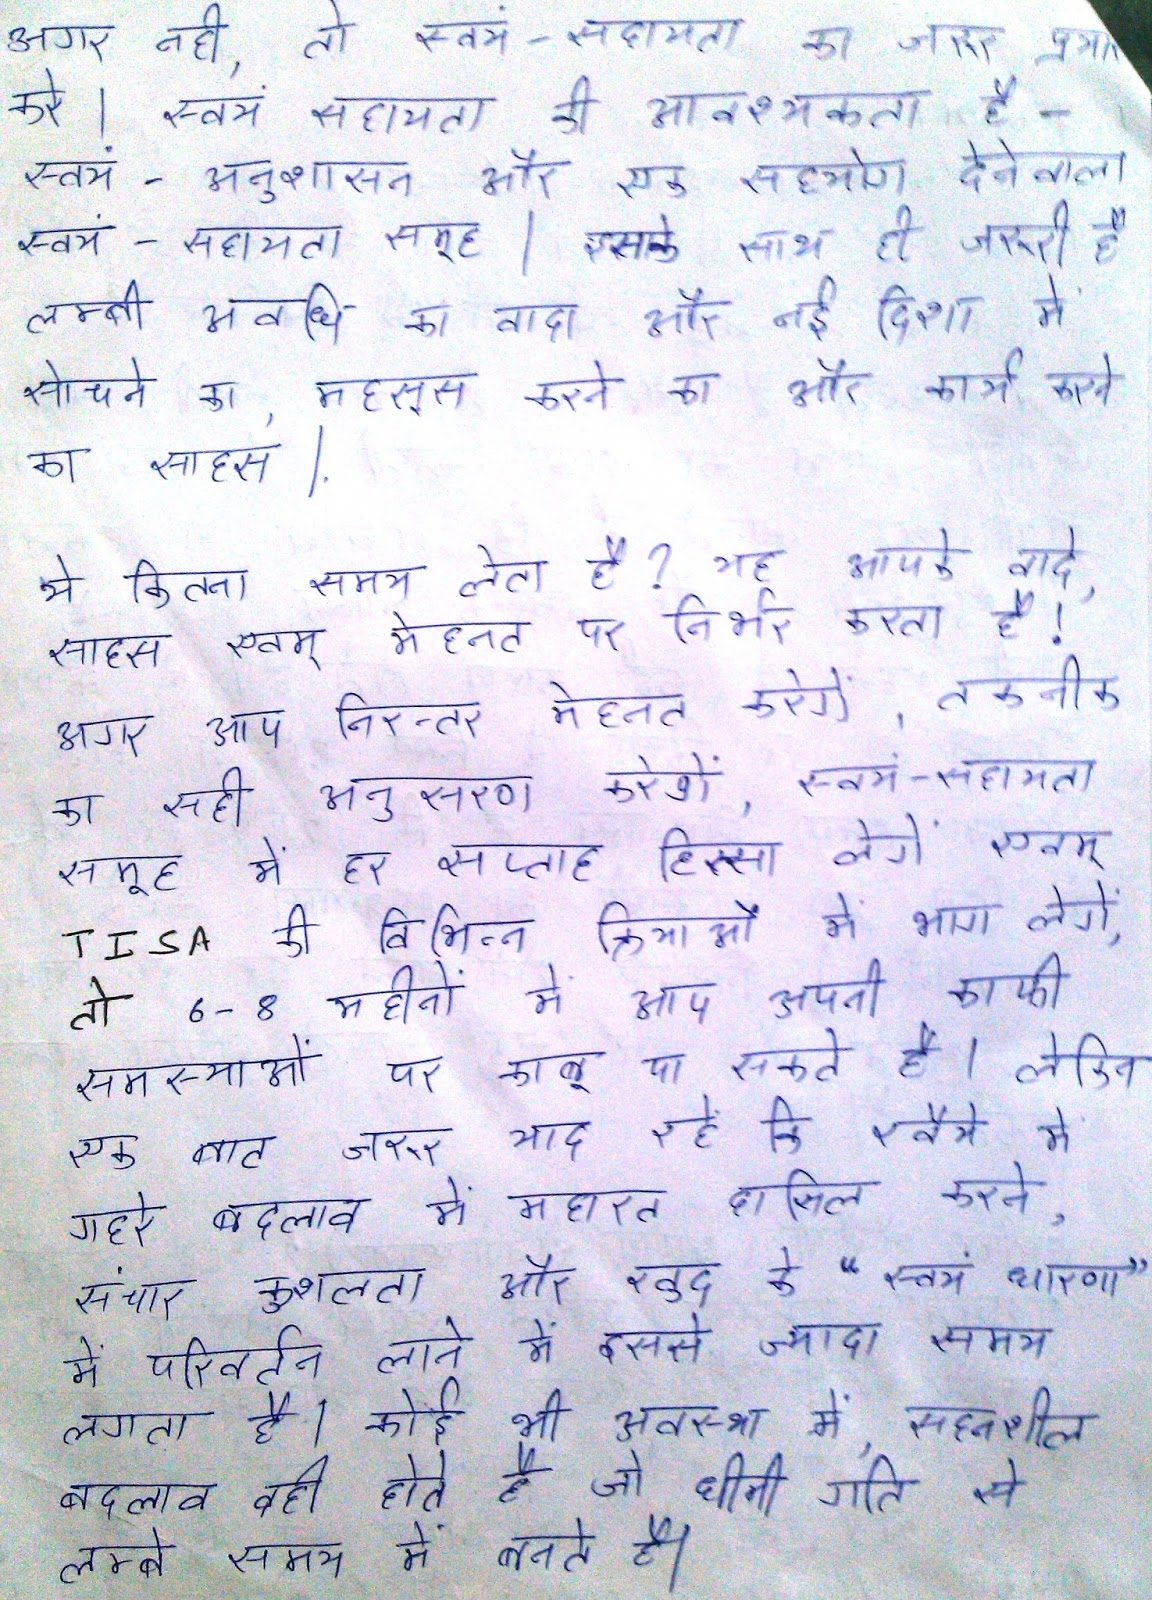 Hindi translation of apna hath jagannath the indian stammering also if permitted from the author copyright are with sachin sir i would like to publish the hindi version of ahj stopboris Choice Image